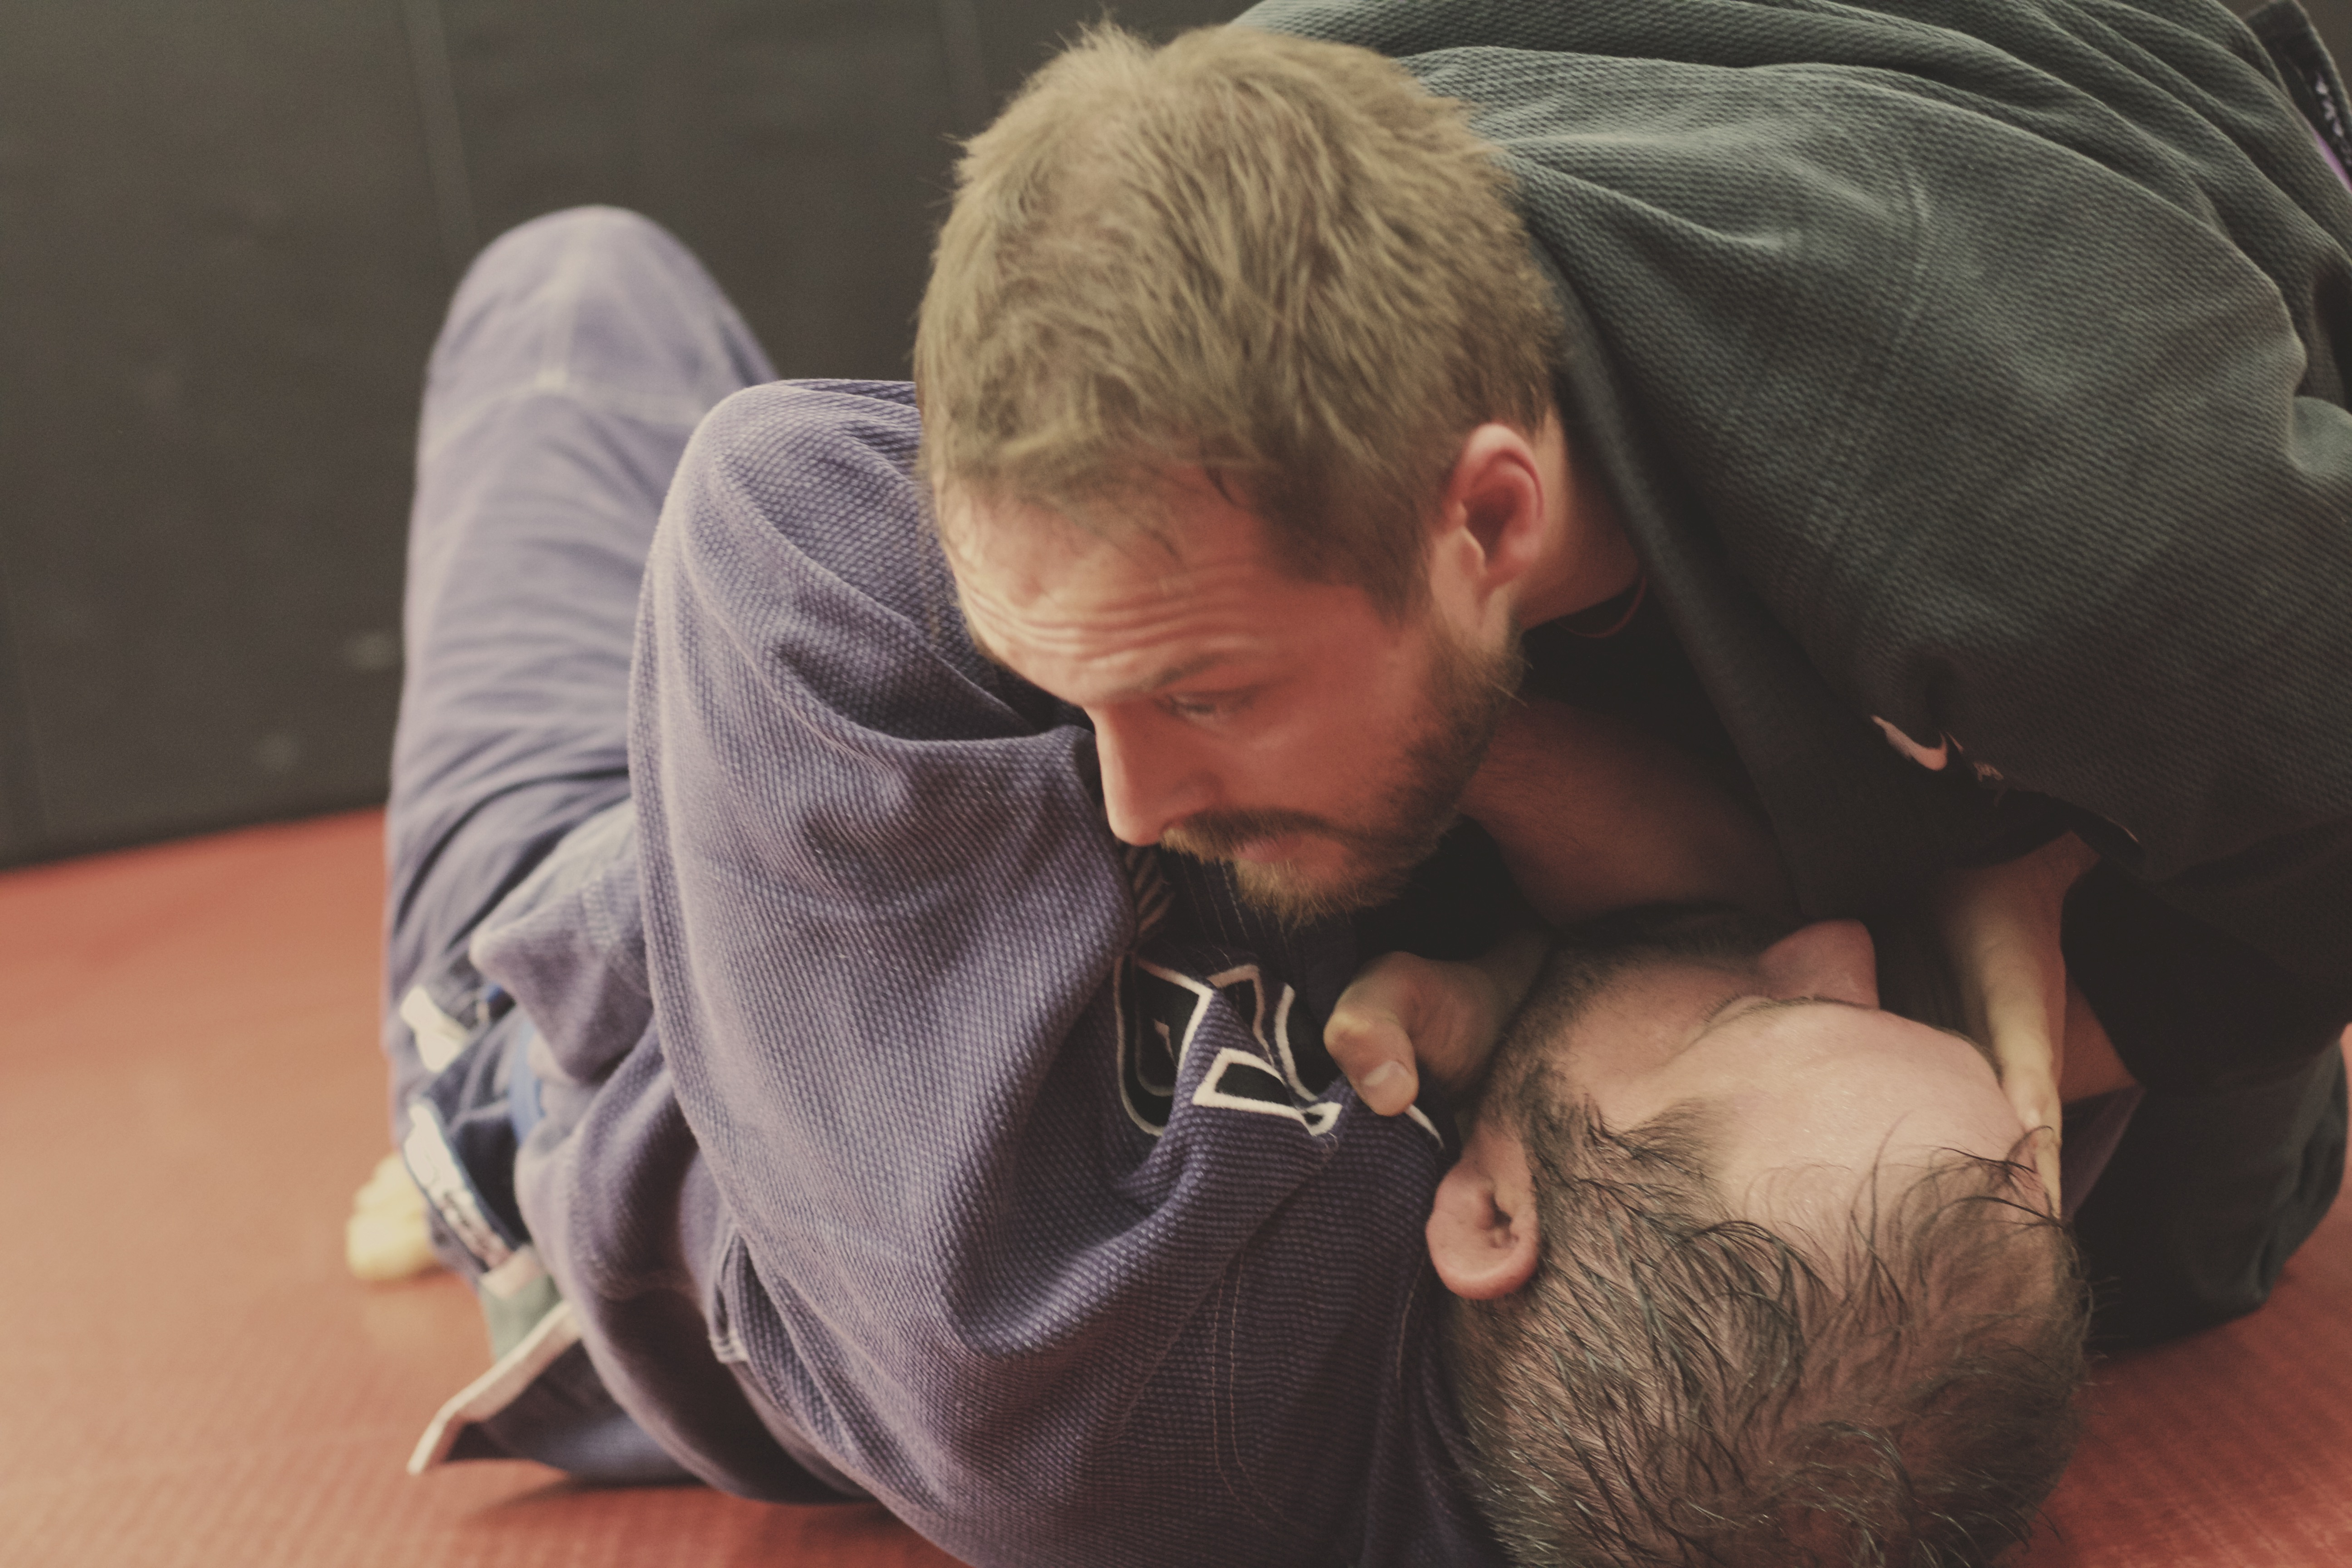 Chain BJJ Drills - Be A Move Ahead Of Your Competition